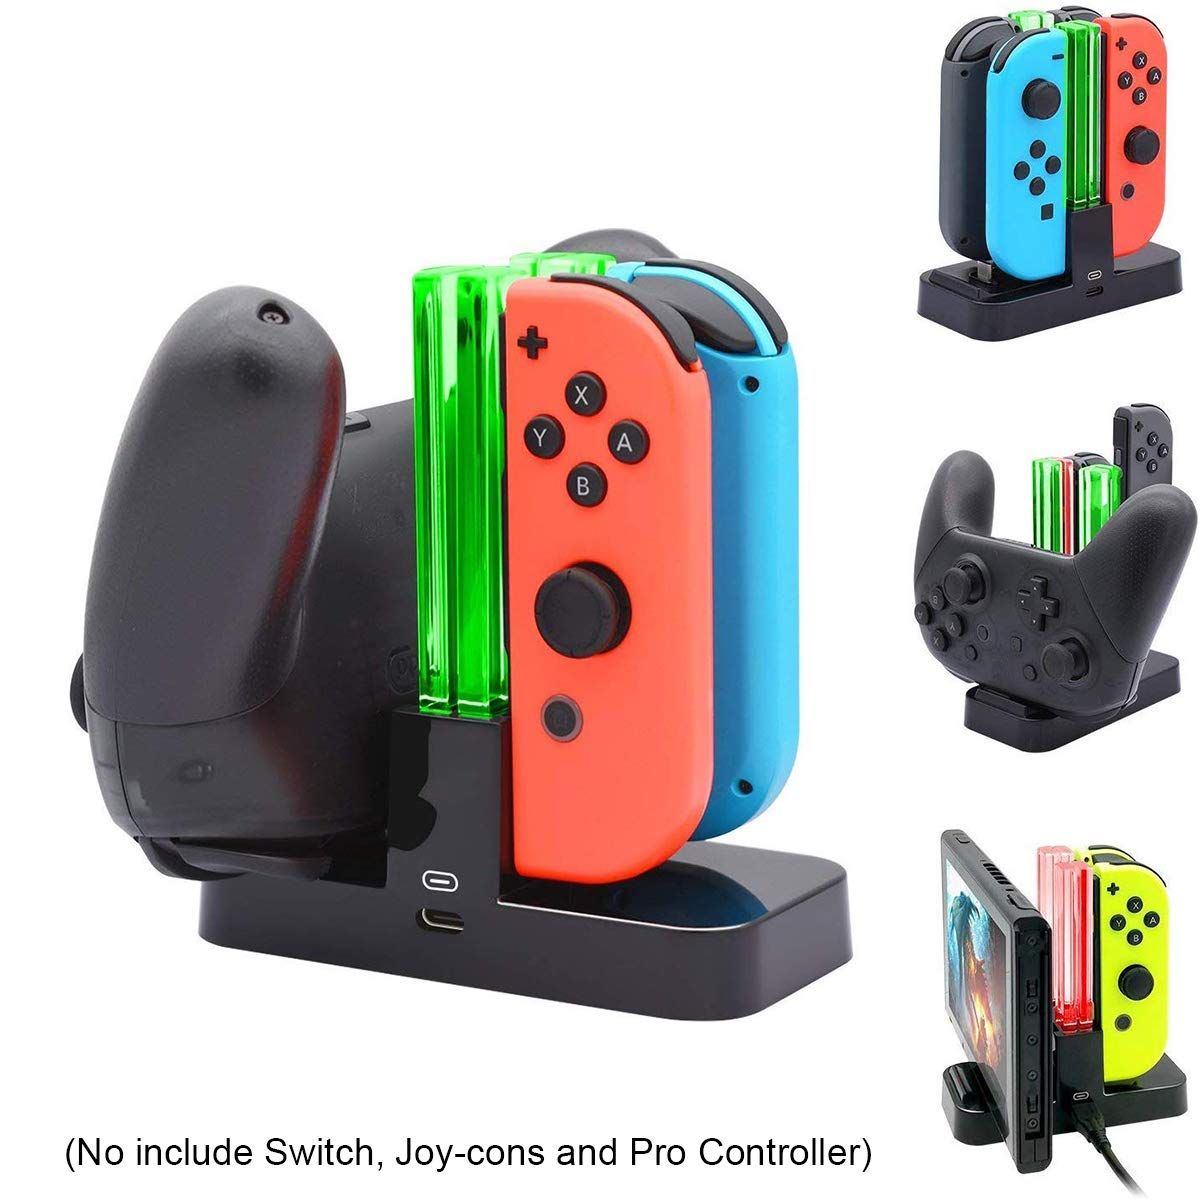 Beastron Controller Charger for Nintendo Switch, Joy-Con and Pro